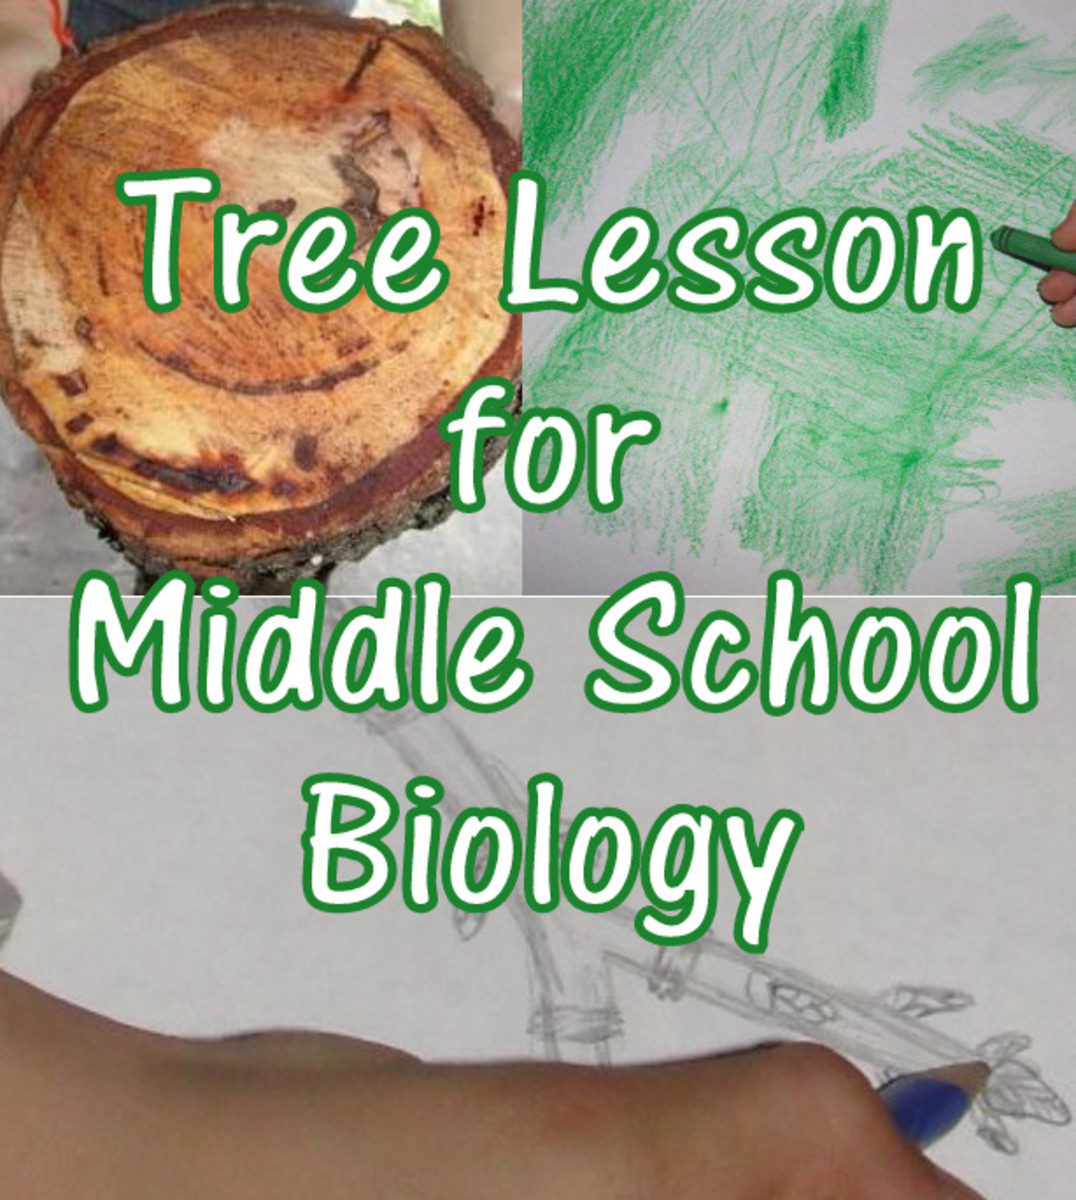 Tree Lesson for Middle School Biology